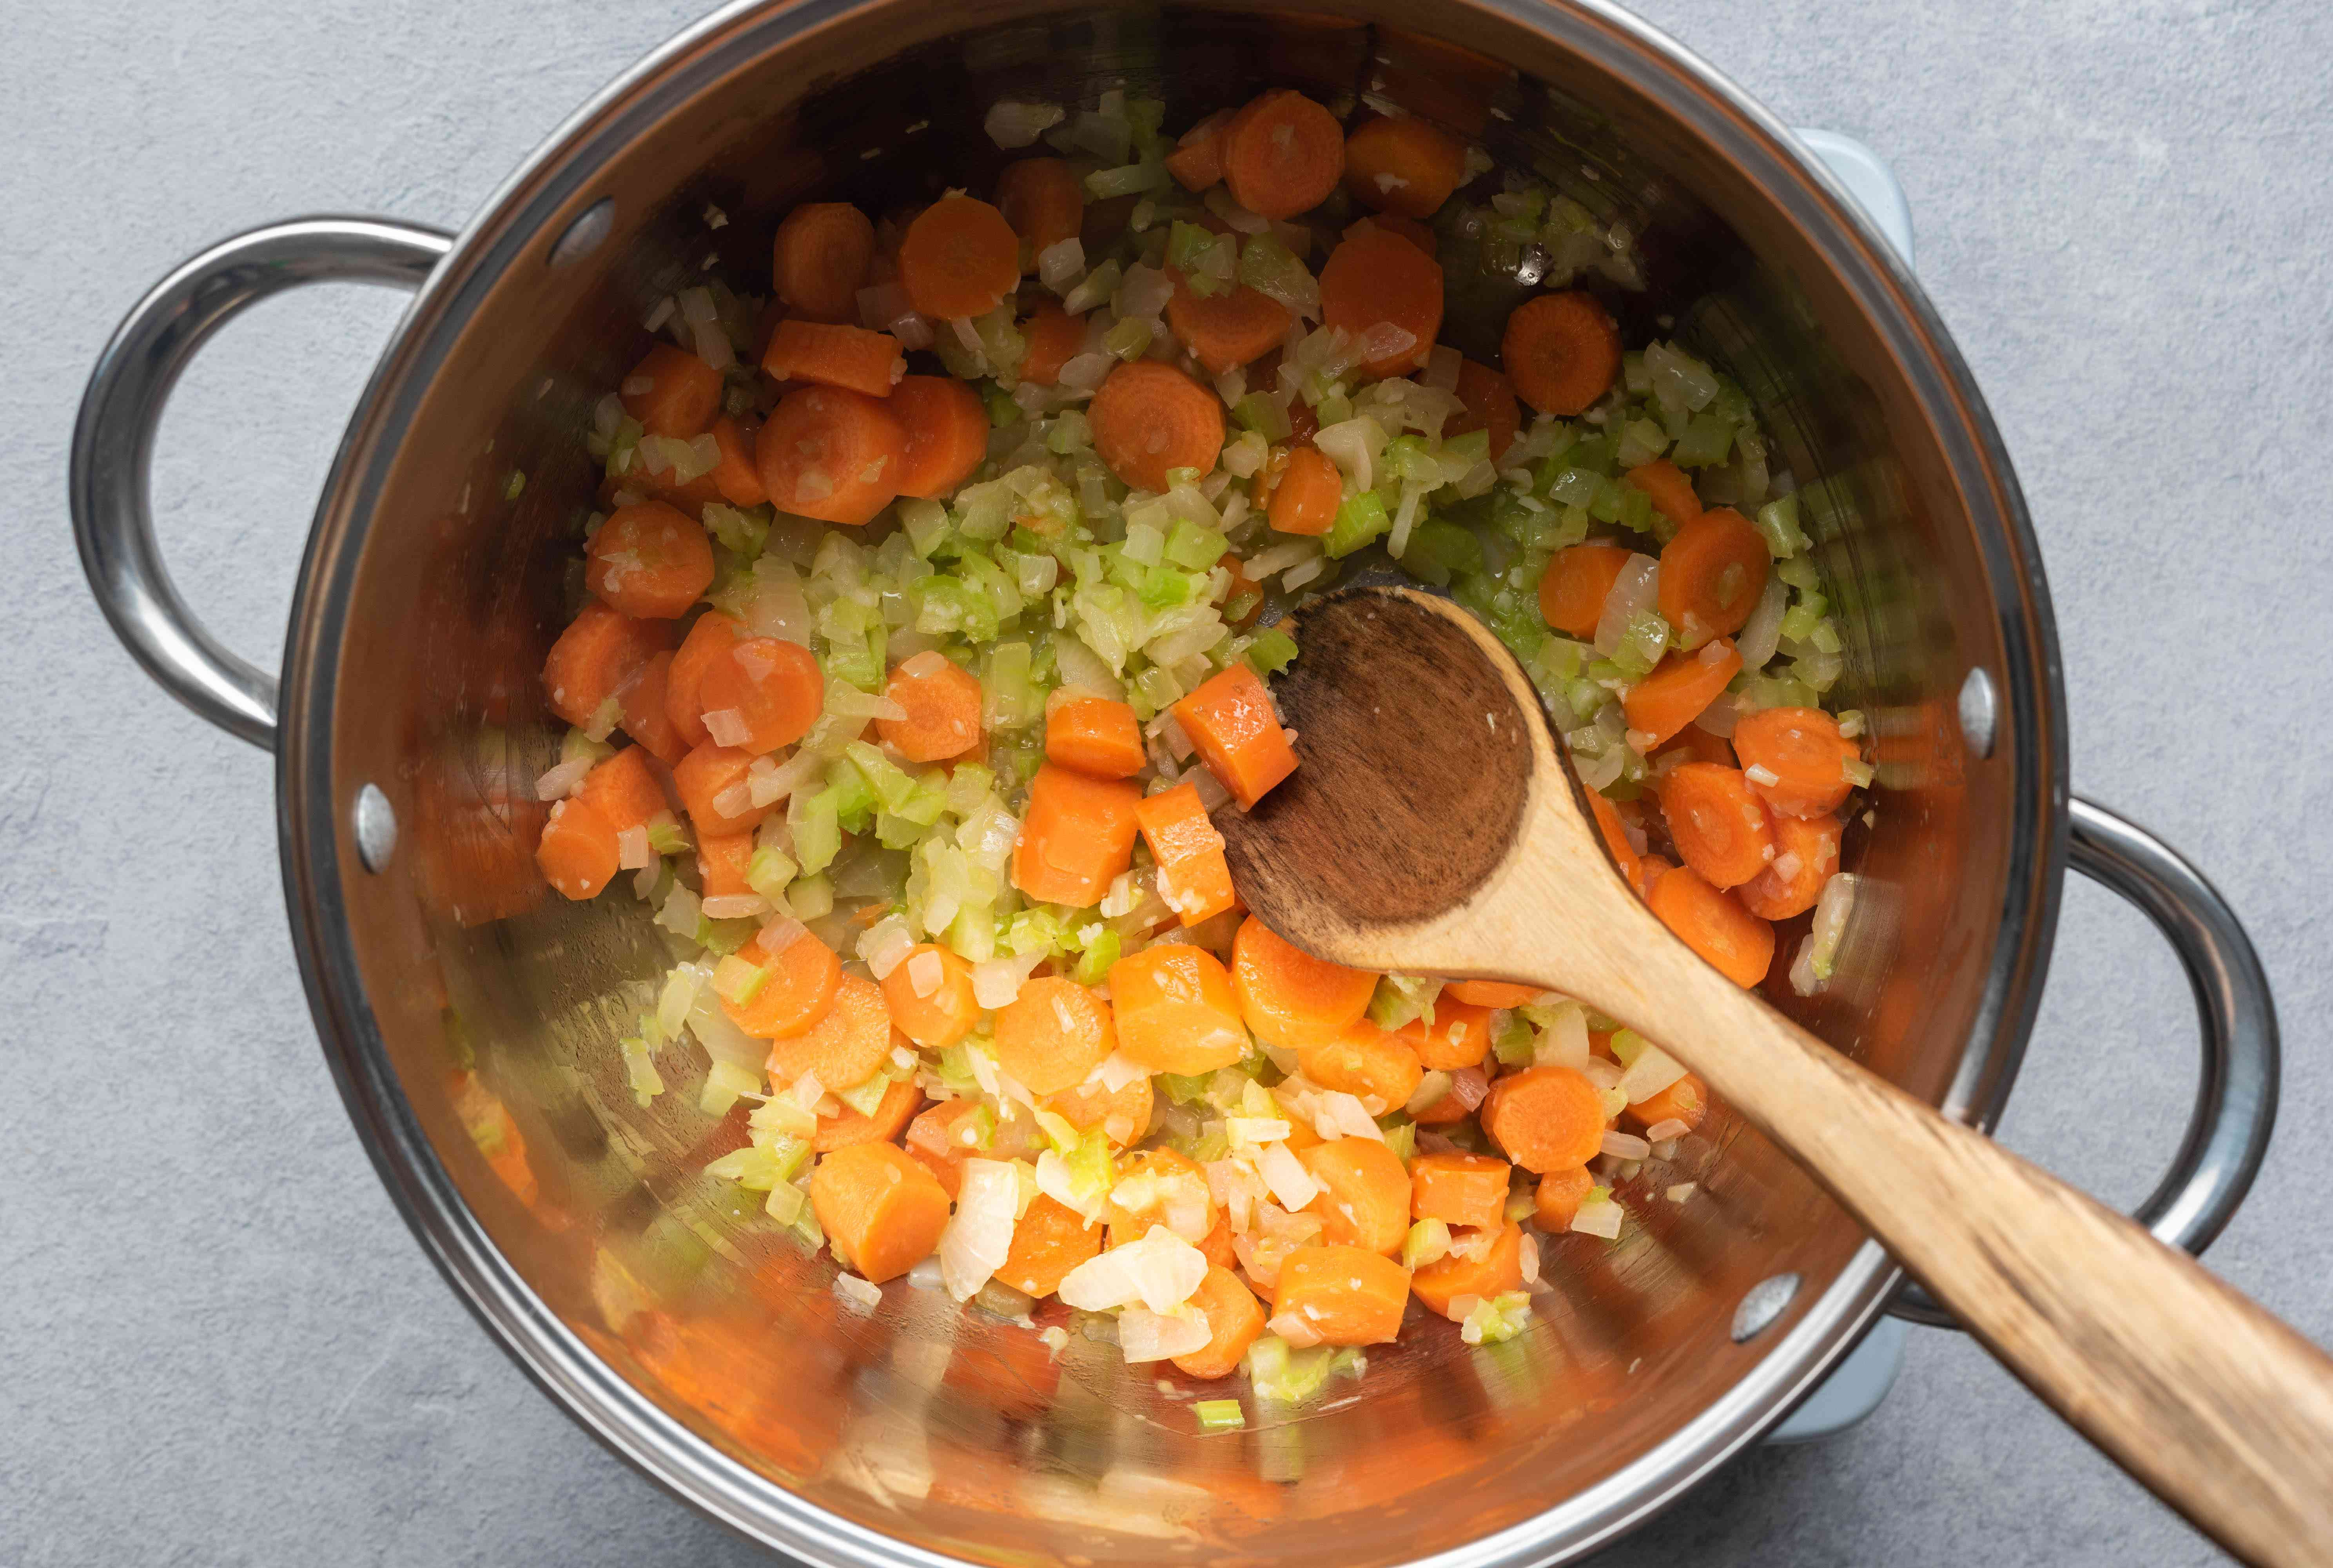 Cook carrots and celery with the onion in the pot